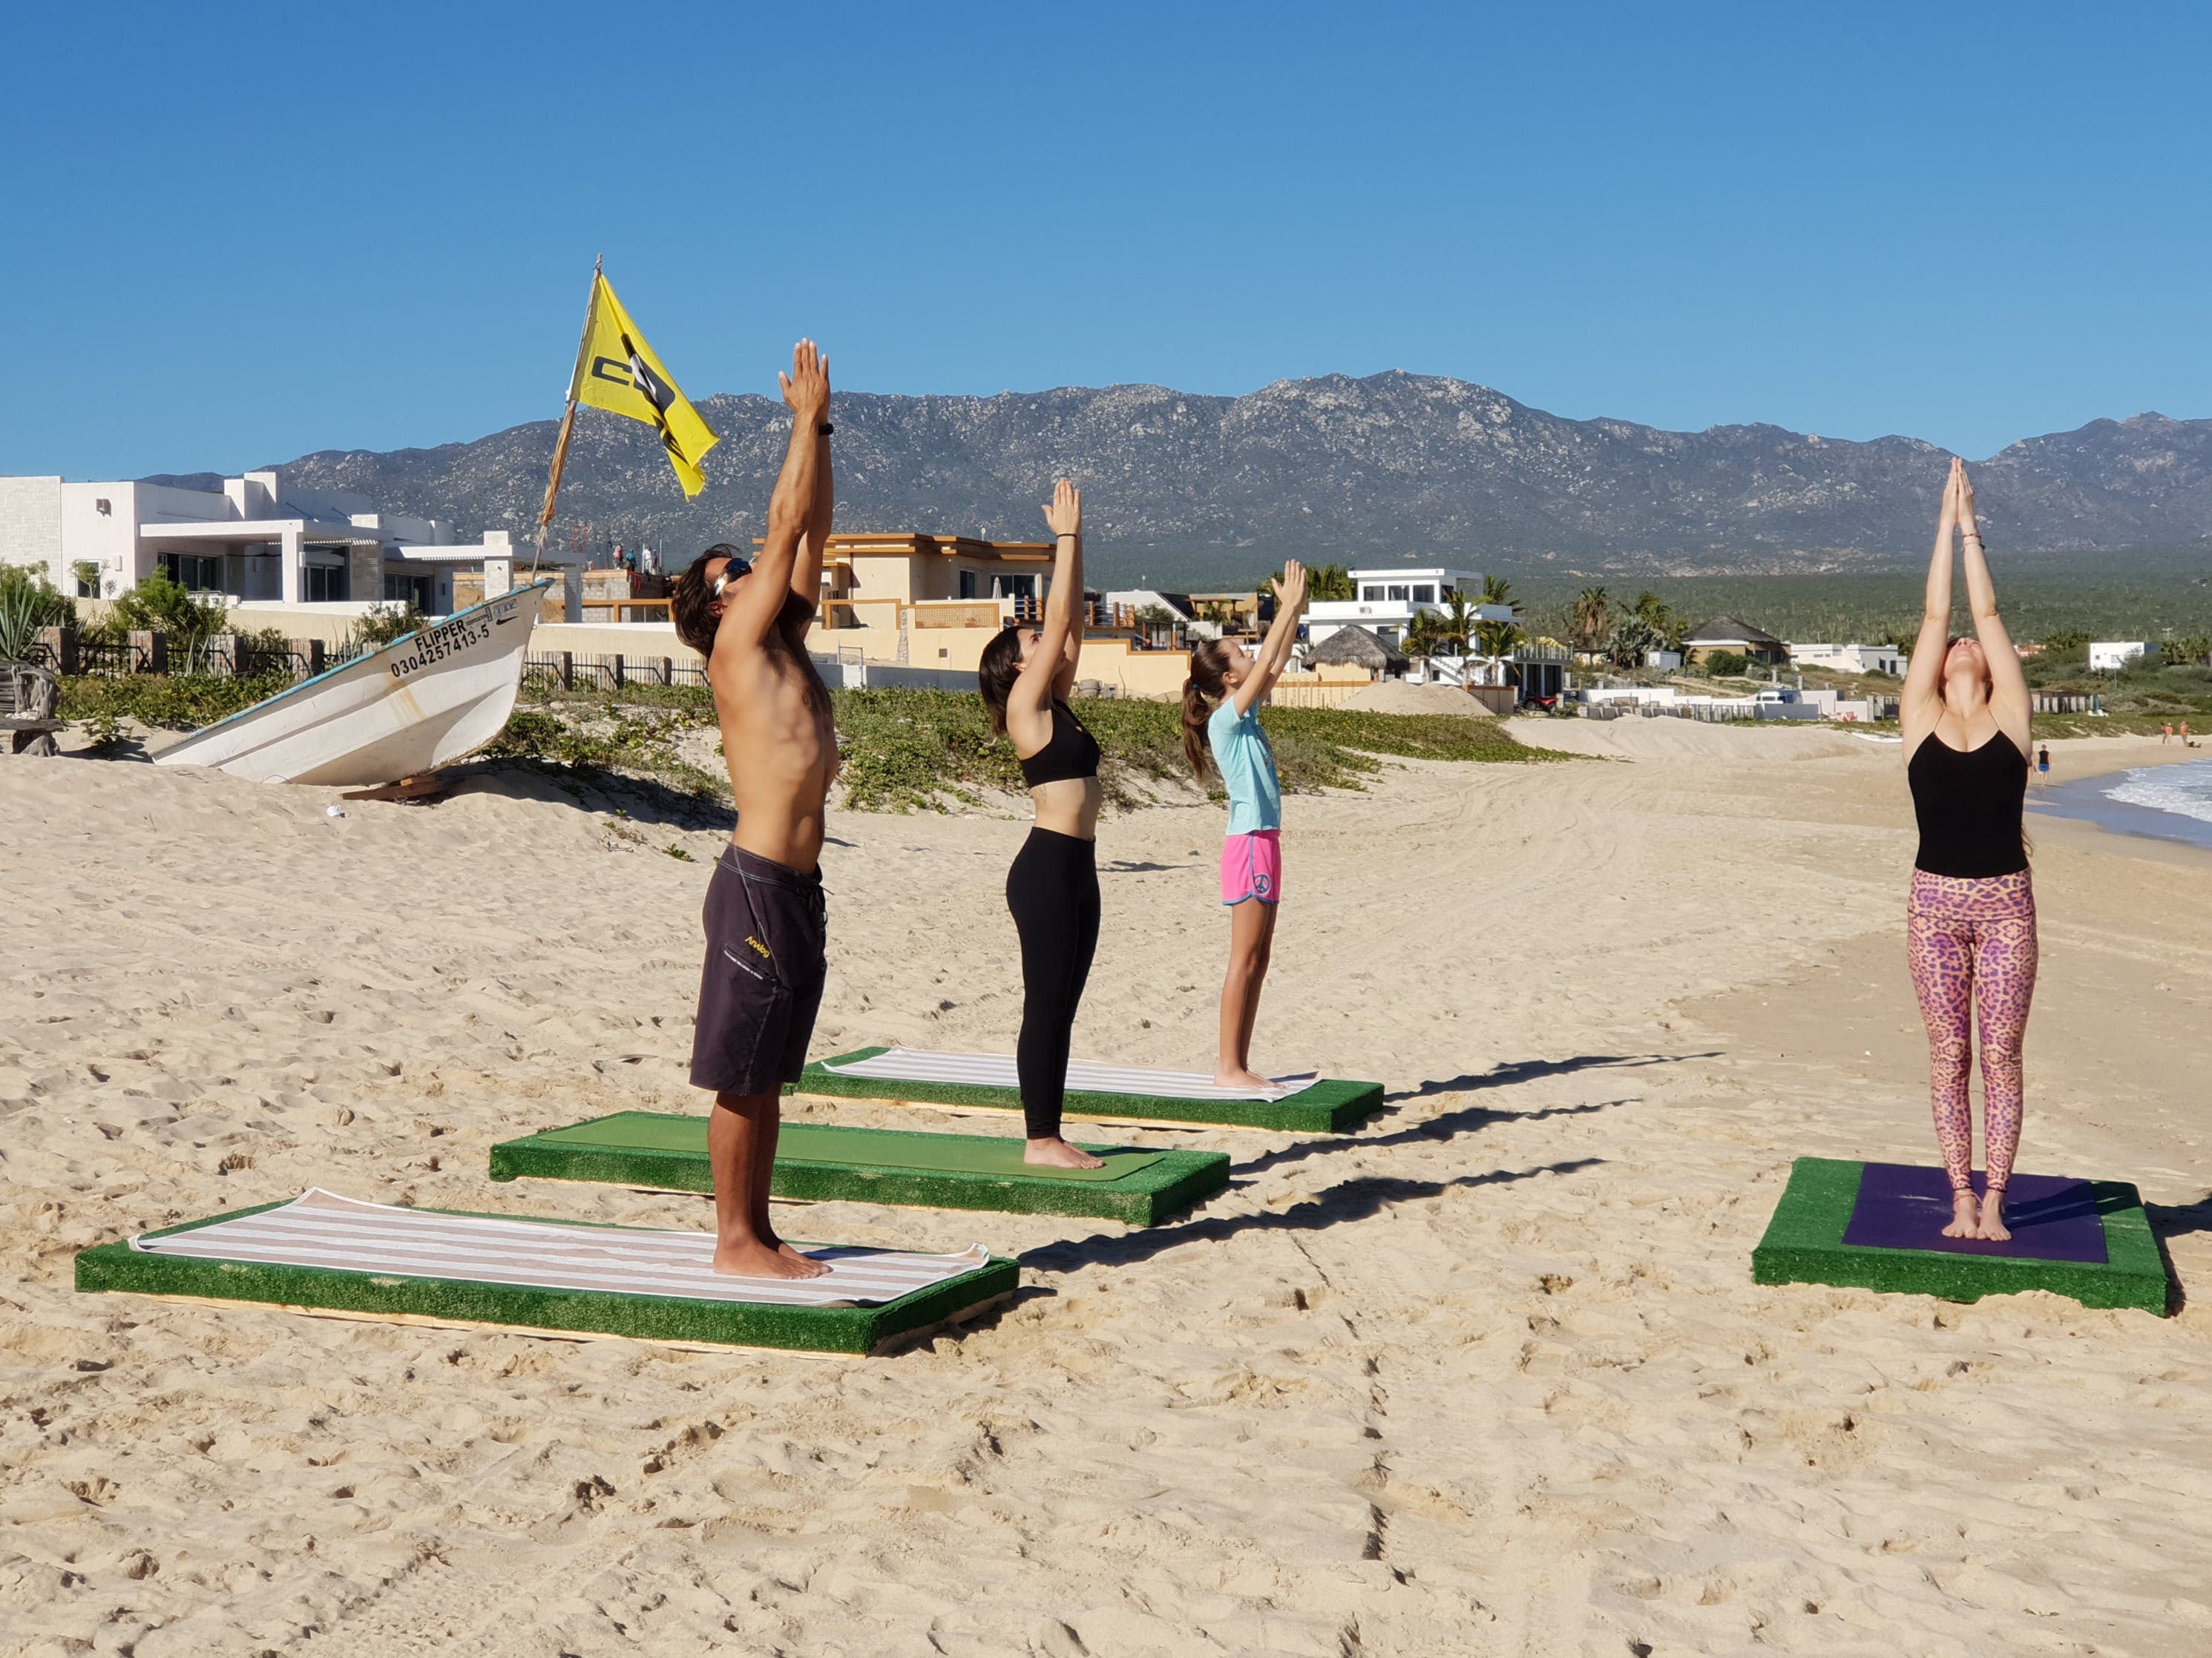 Elena, our yoga instructor in ChiloChill, La Ventana, Baja California Sur, Mexico.